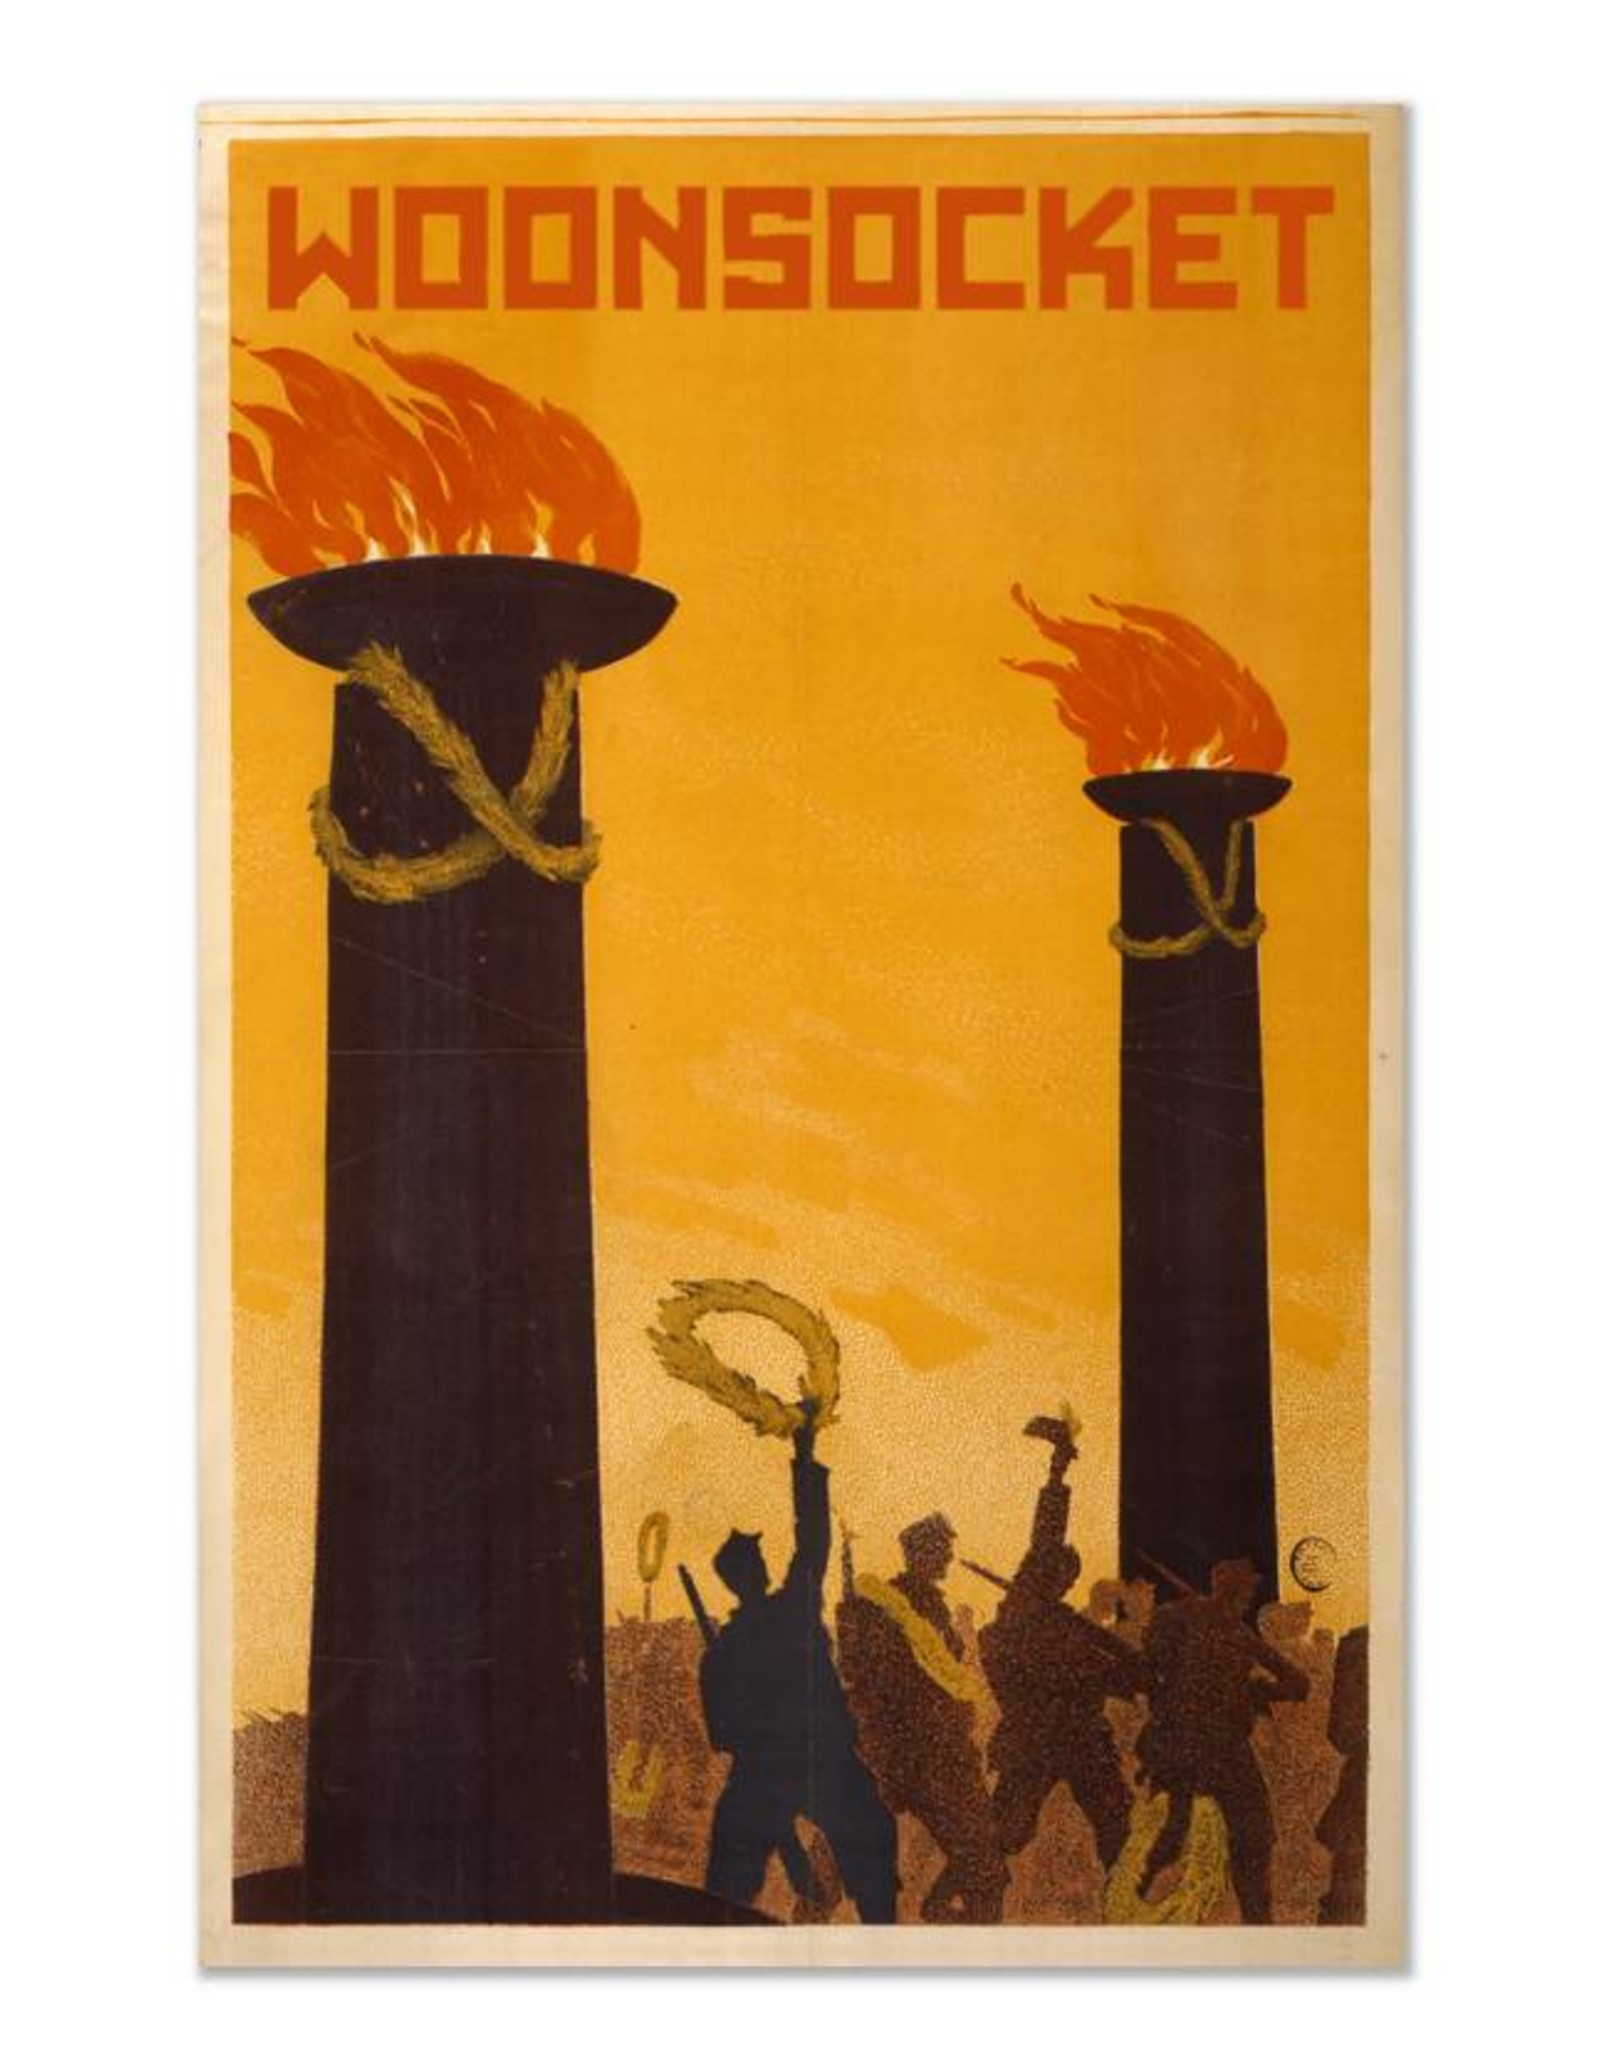 The Woonsocket Revolution Print